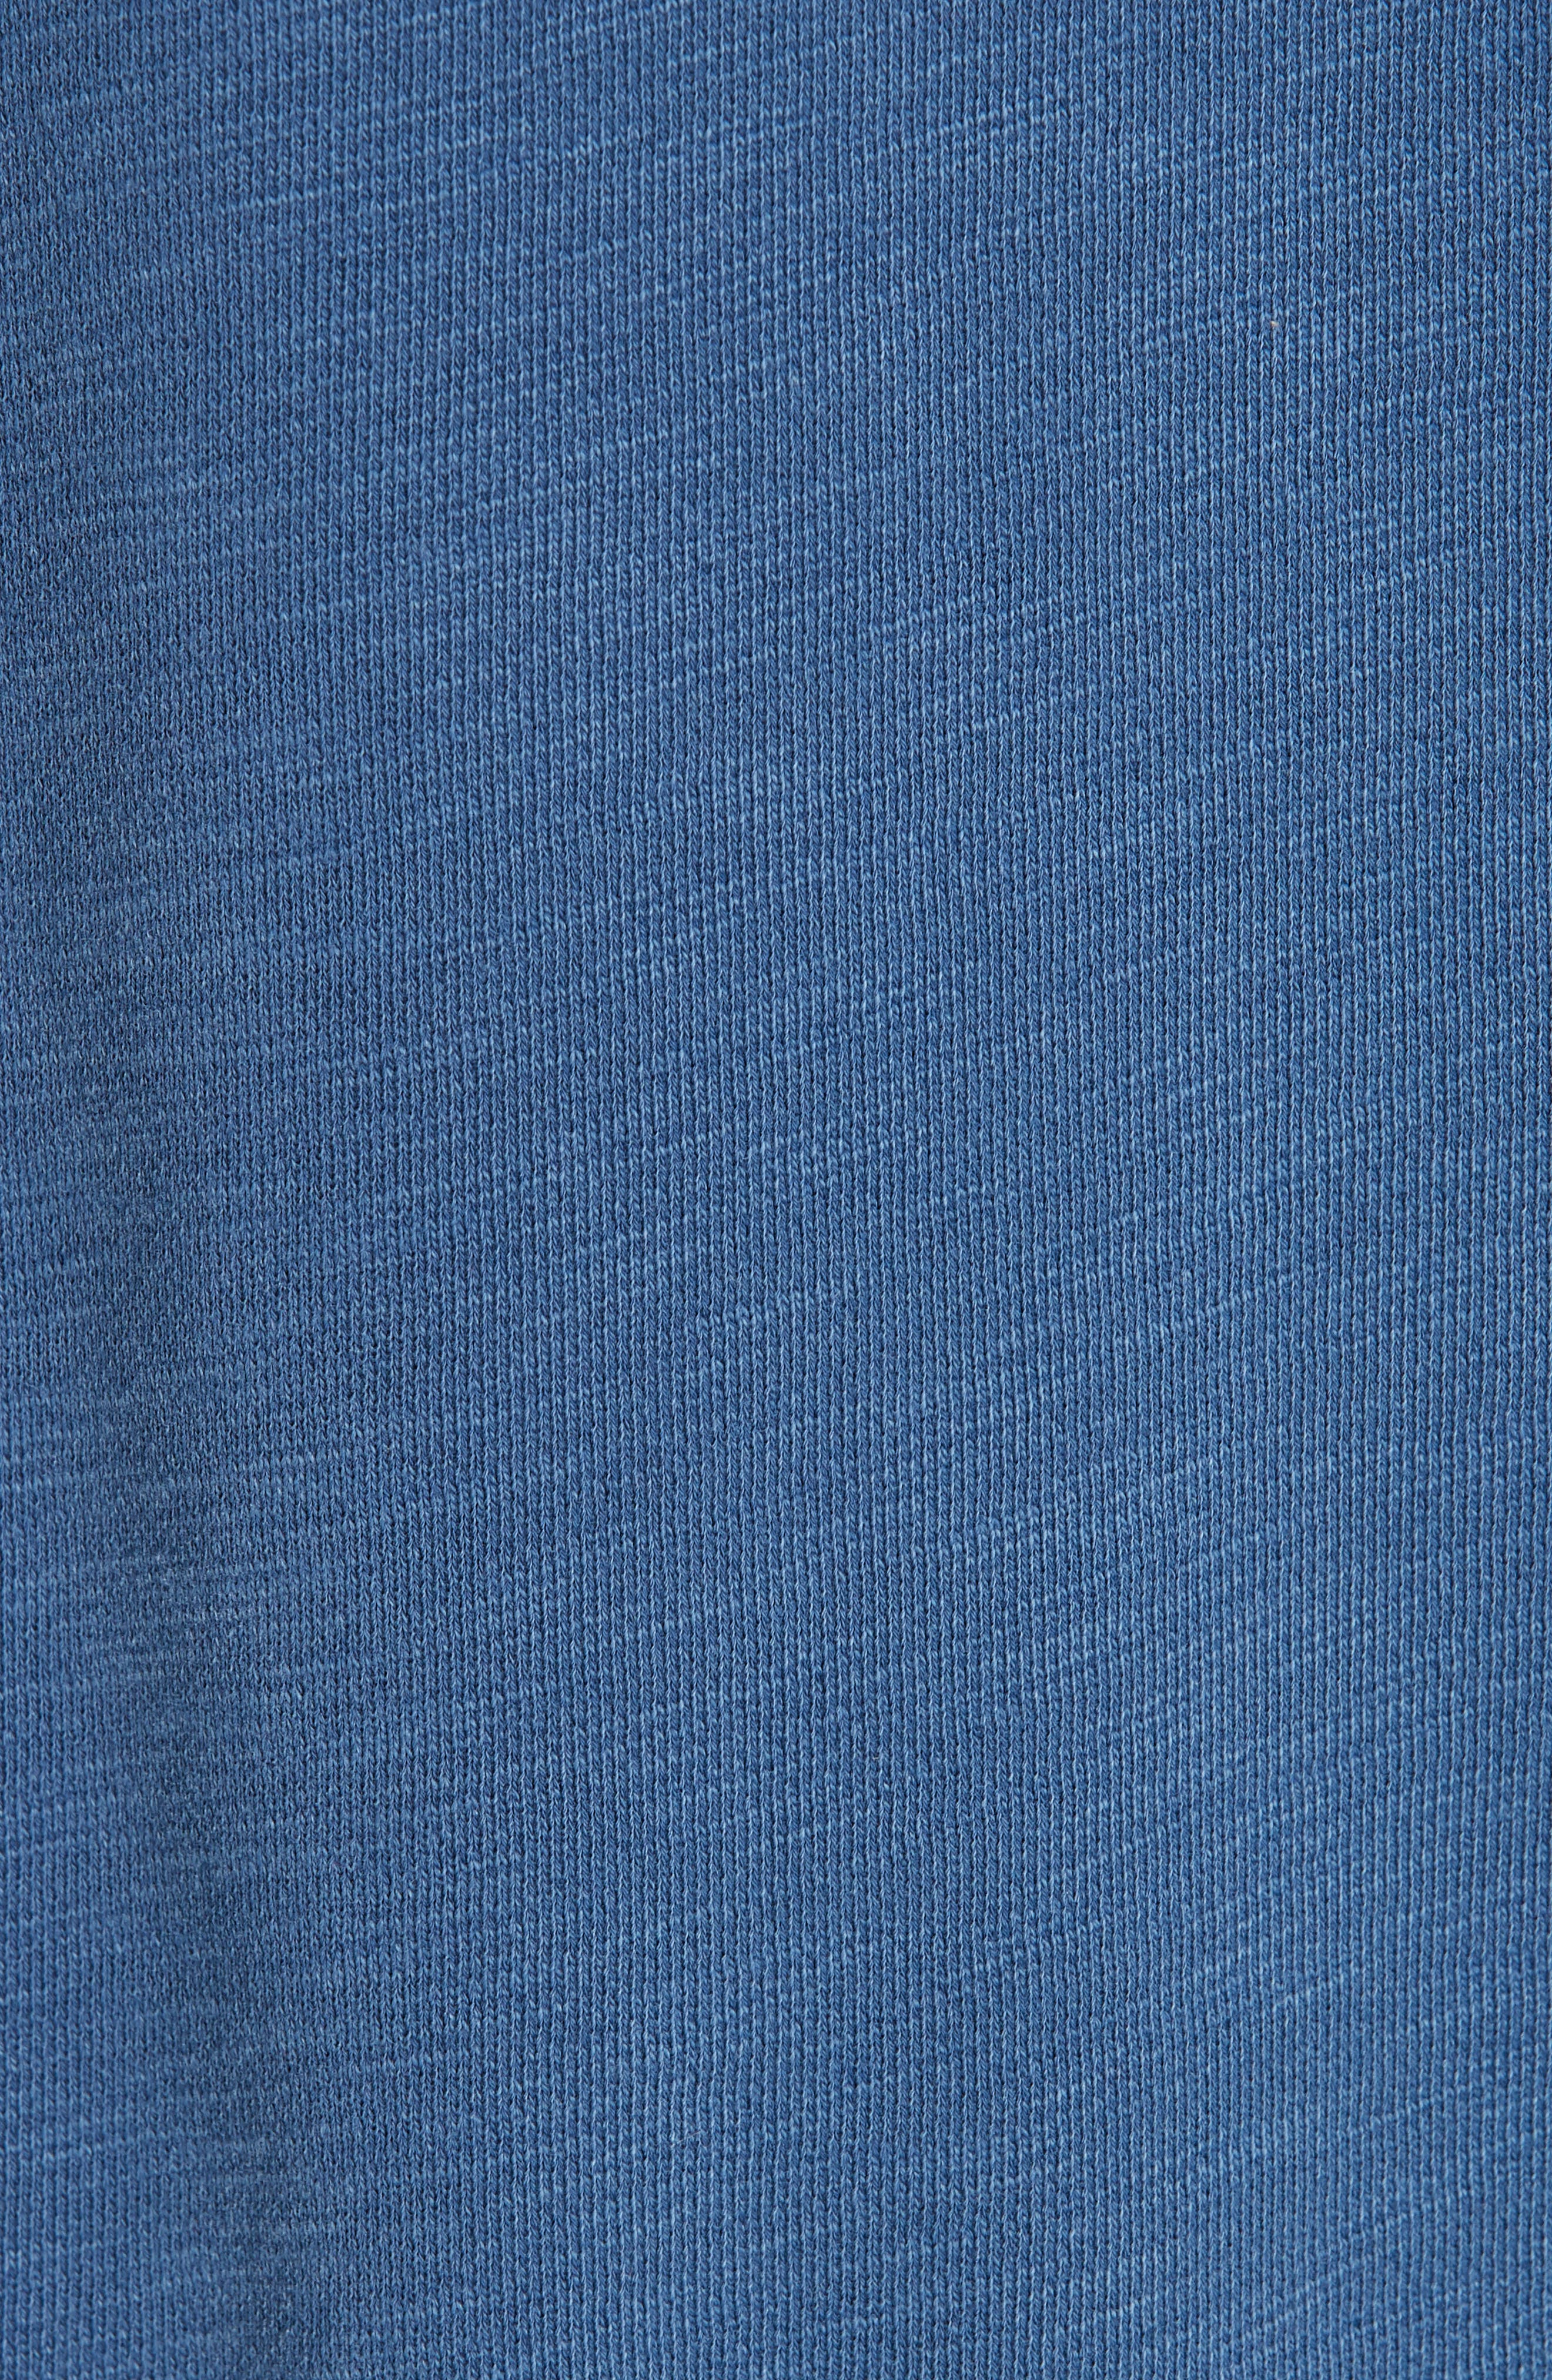 Racer Hoodie,                             Alternate thumbnail 5, color,                             WASHED NAVY